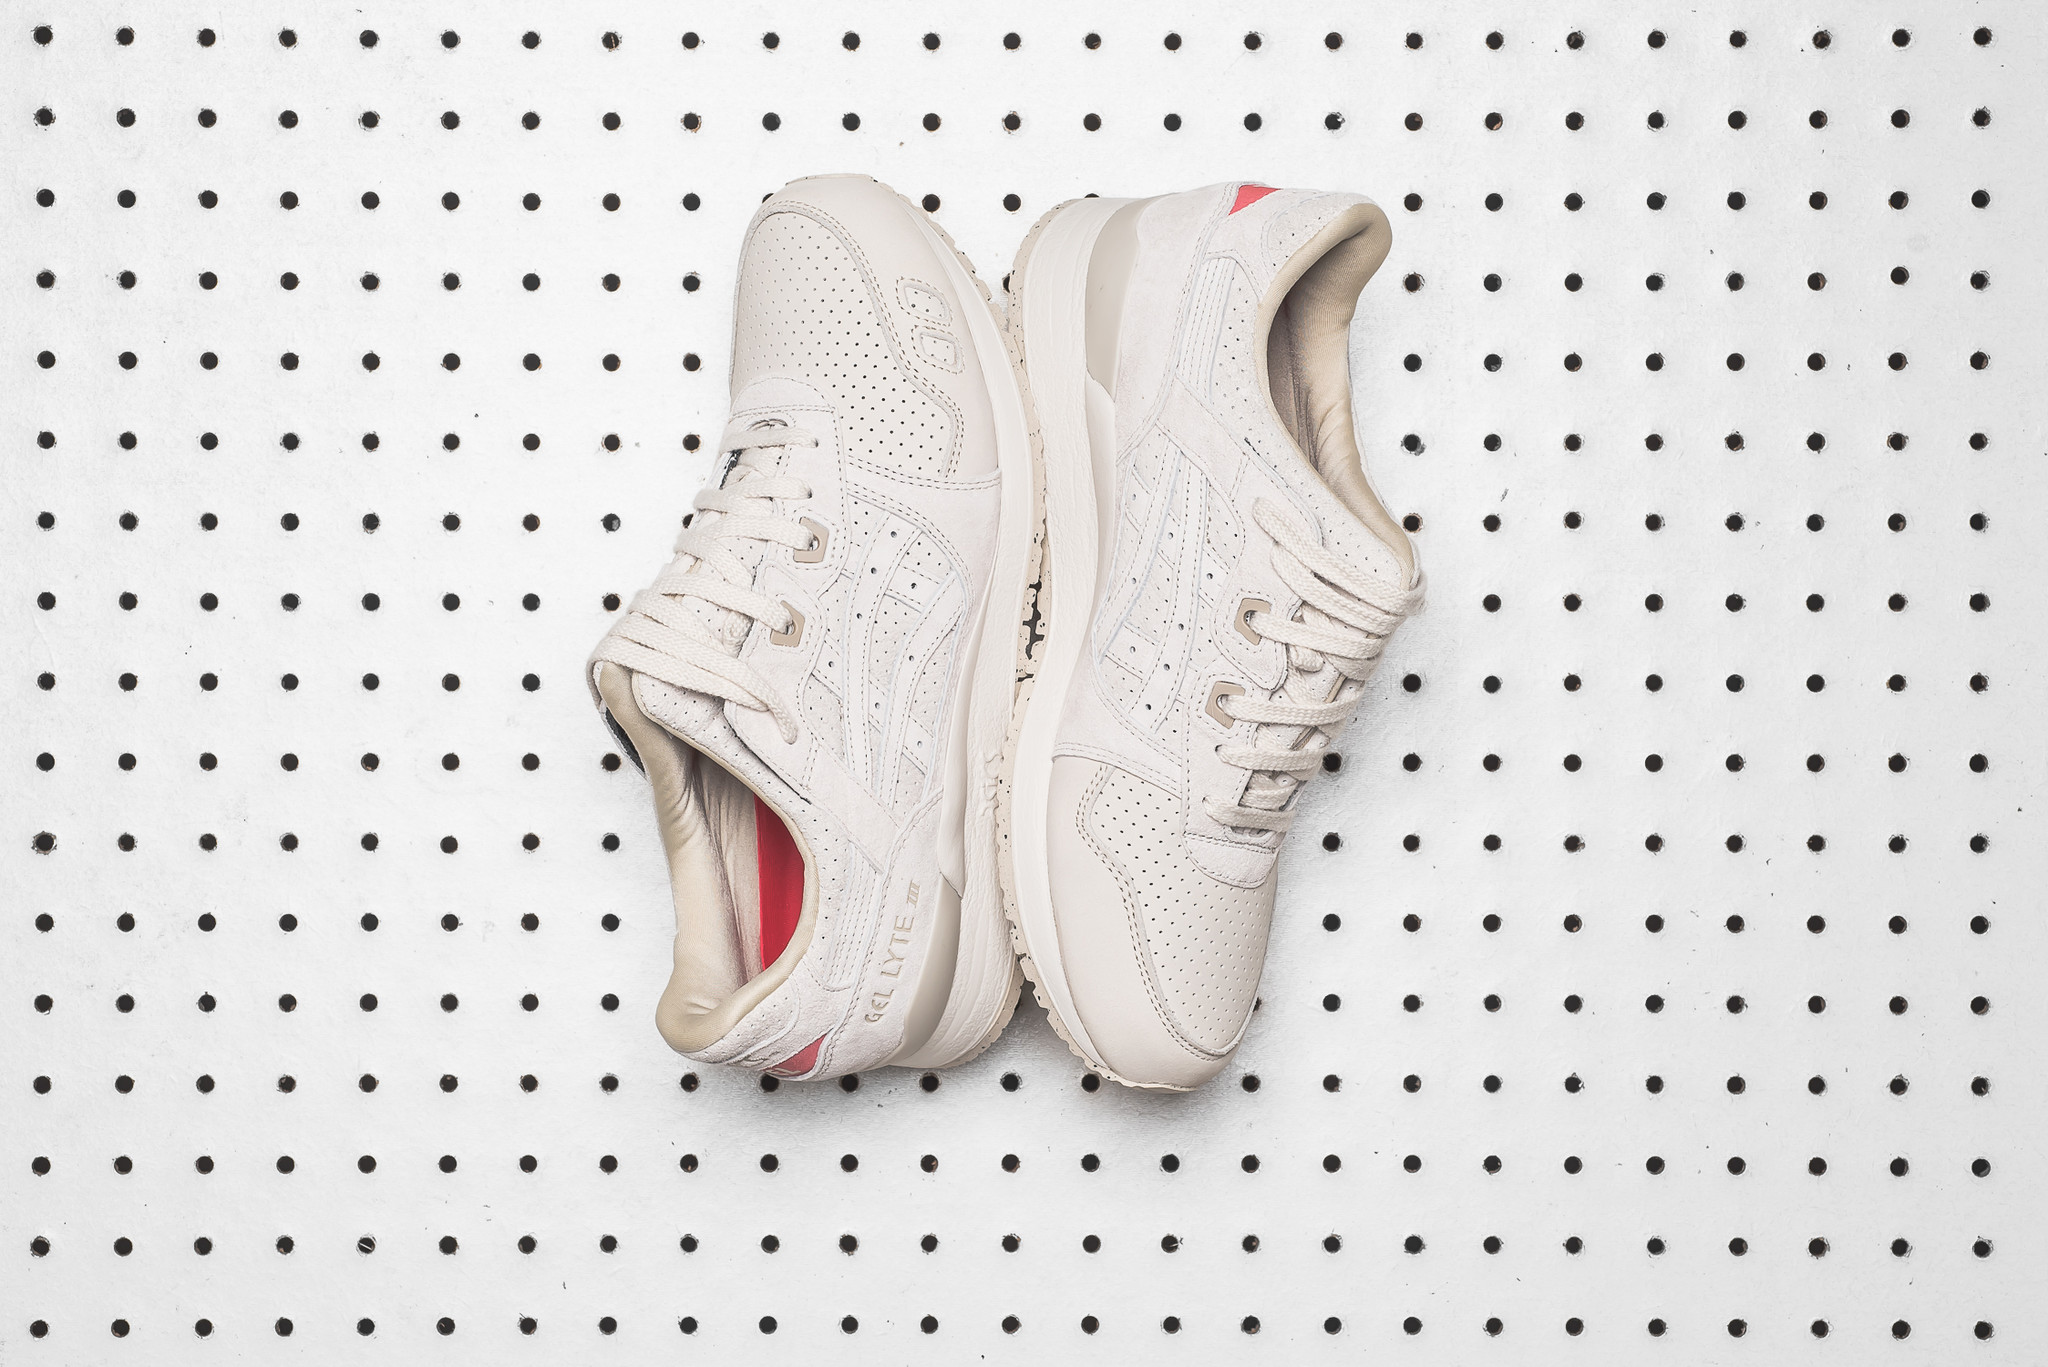 asics 'perforated pack'